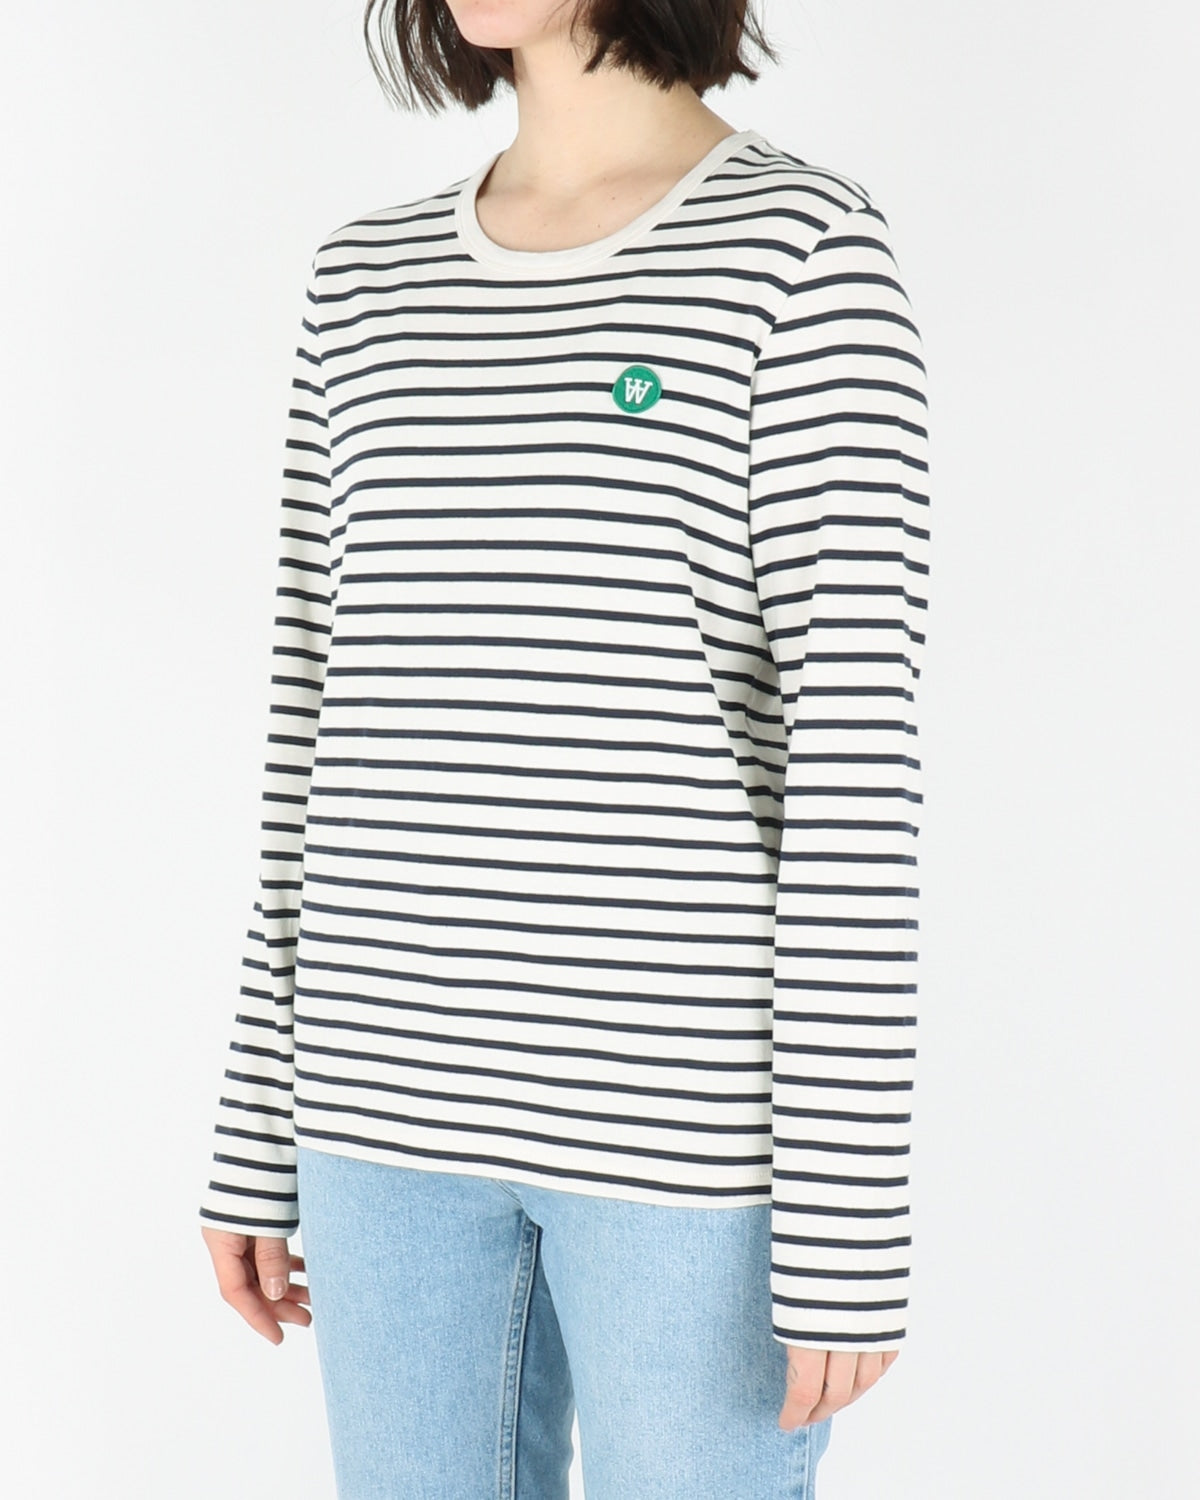 wood wood_moa longsleeve_offwhite navy stripes_view_2_3